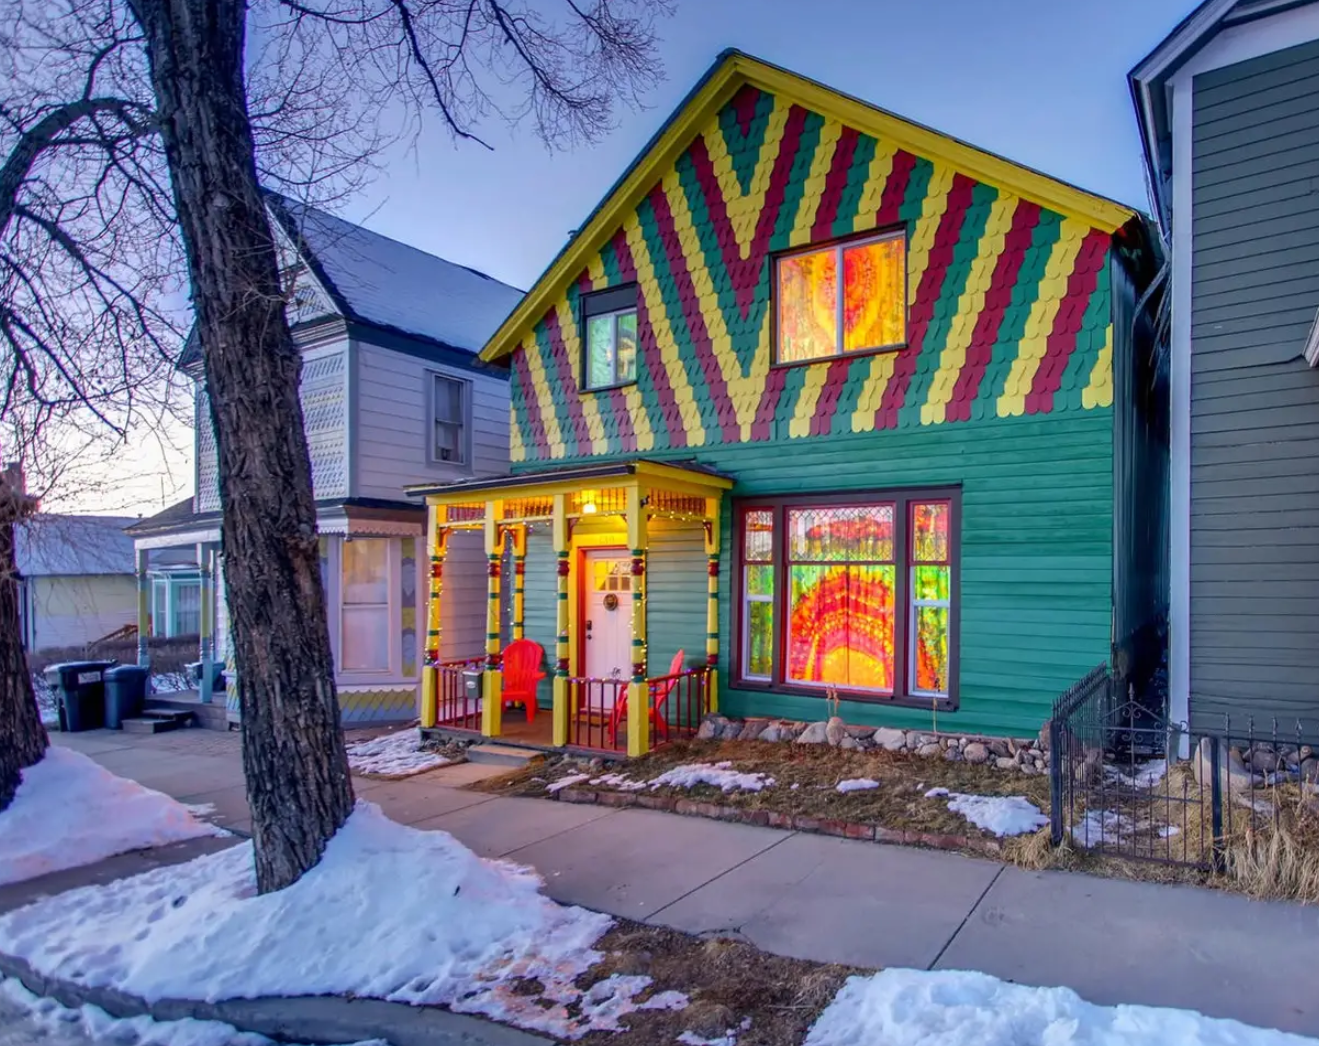 Airbnb The Happy Hippie Tie Dye House, Leadville, Colorado